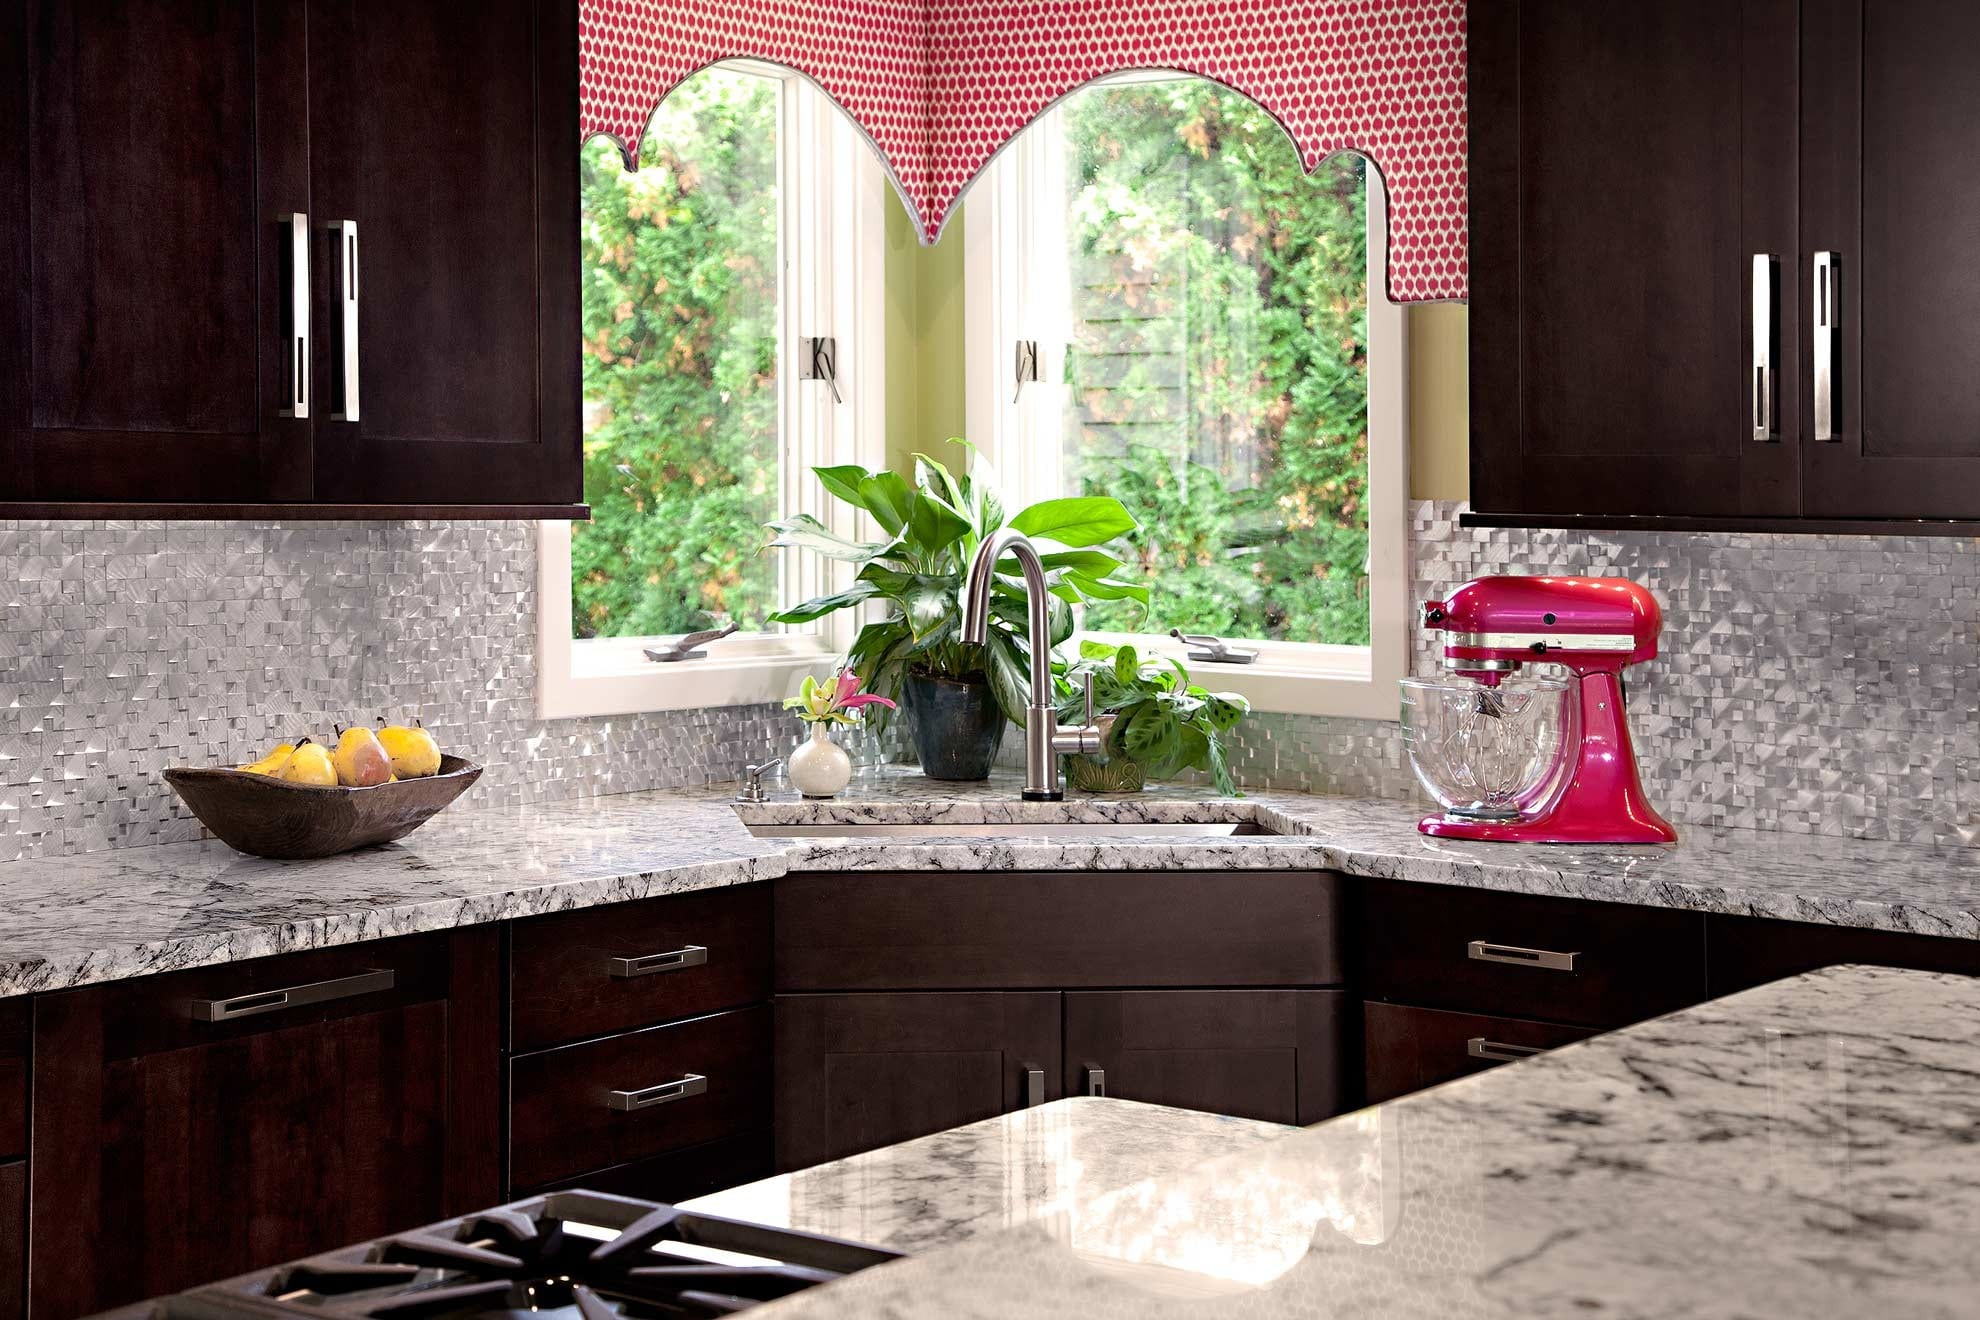 Kitchen Design Center York Pa 5 Solutions For Your Kitchen Corner Cabinet Storage Needs